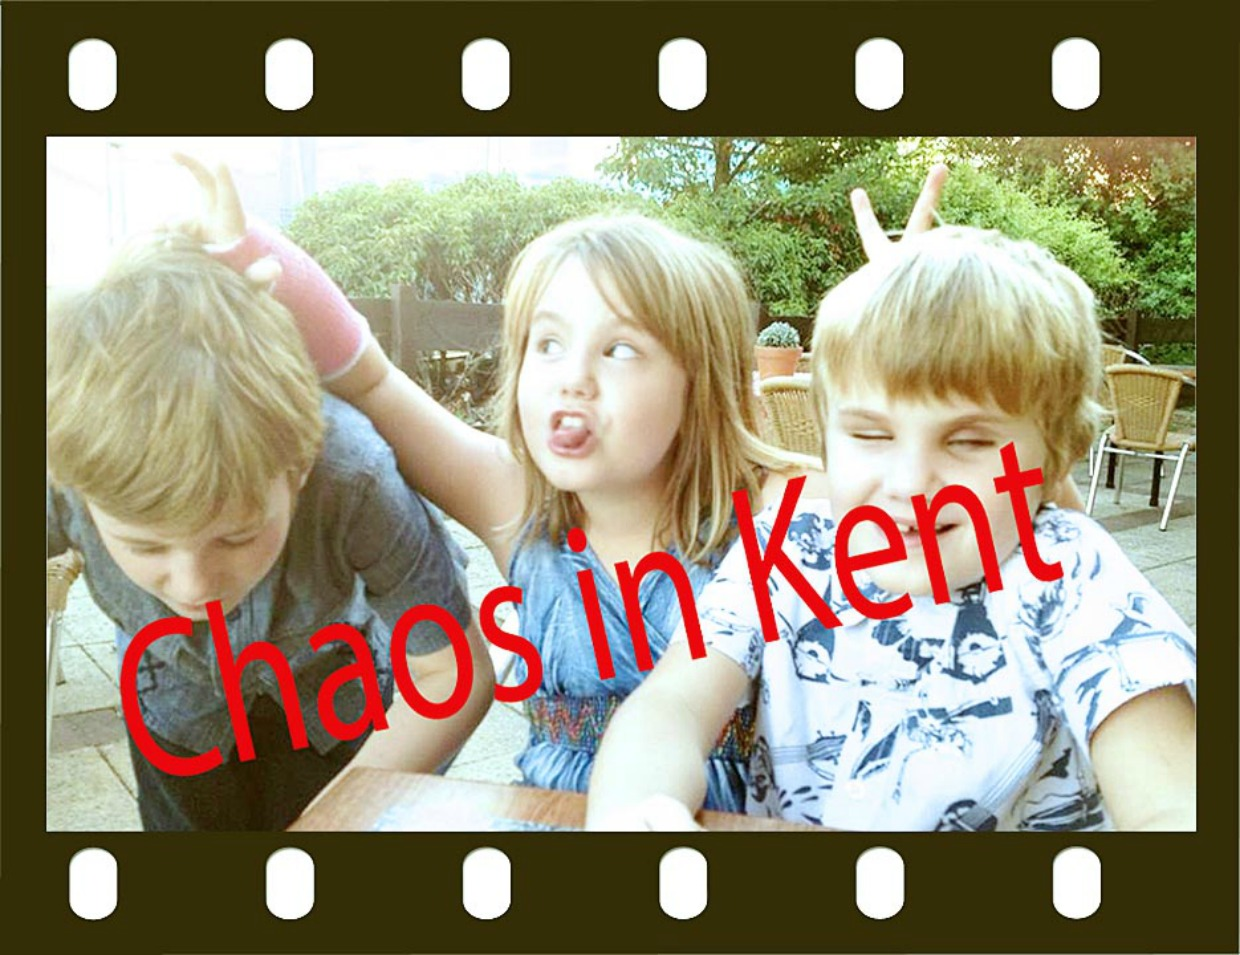 Chaos in Kent